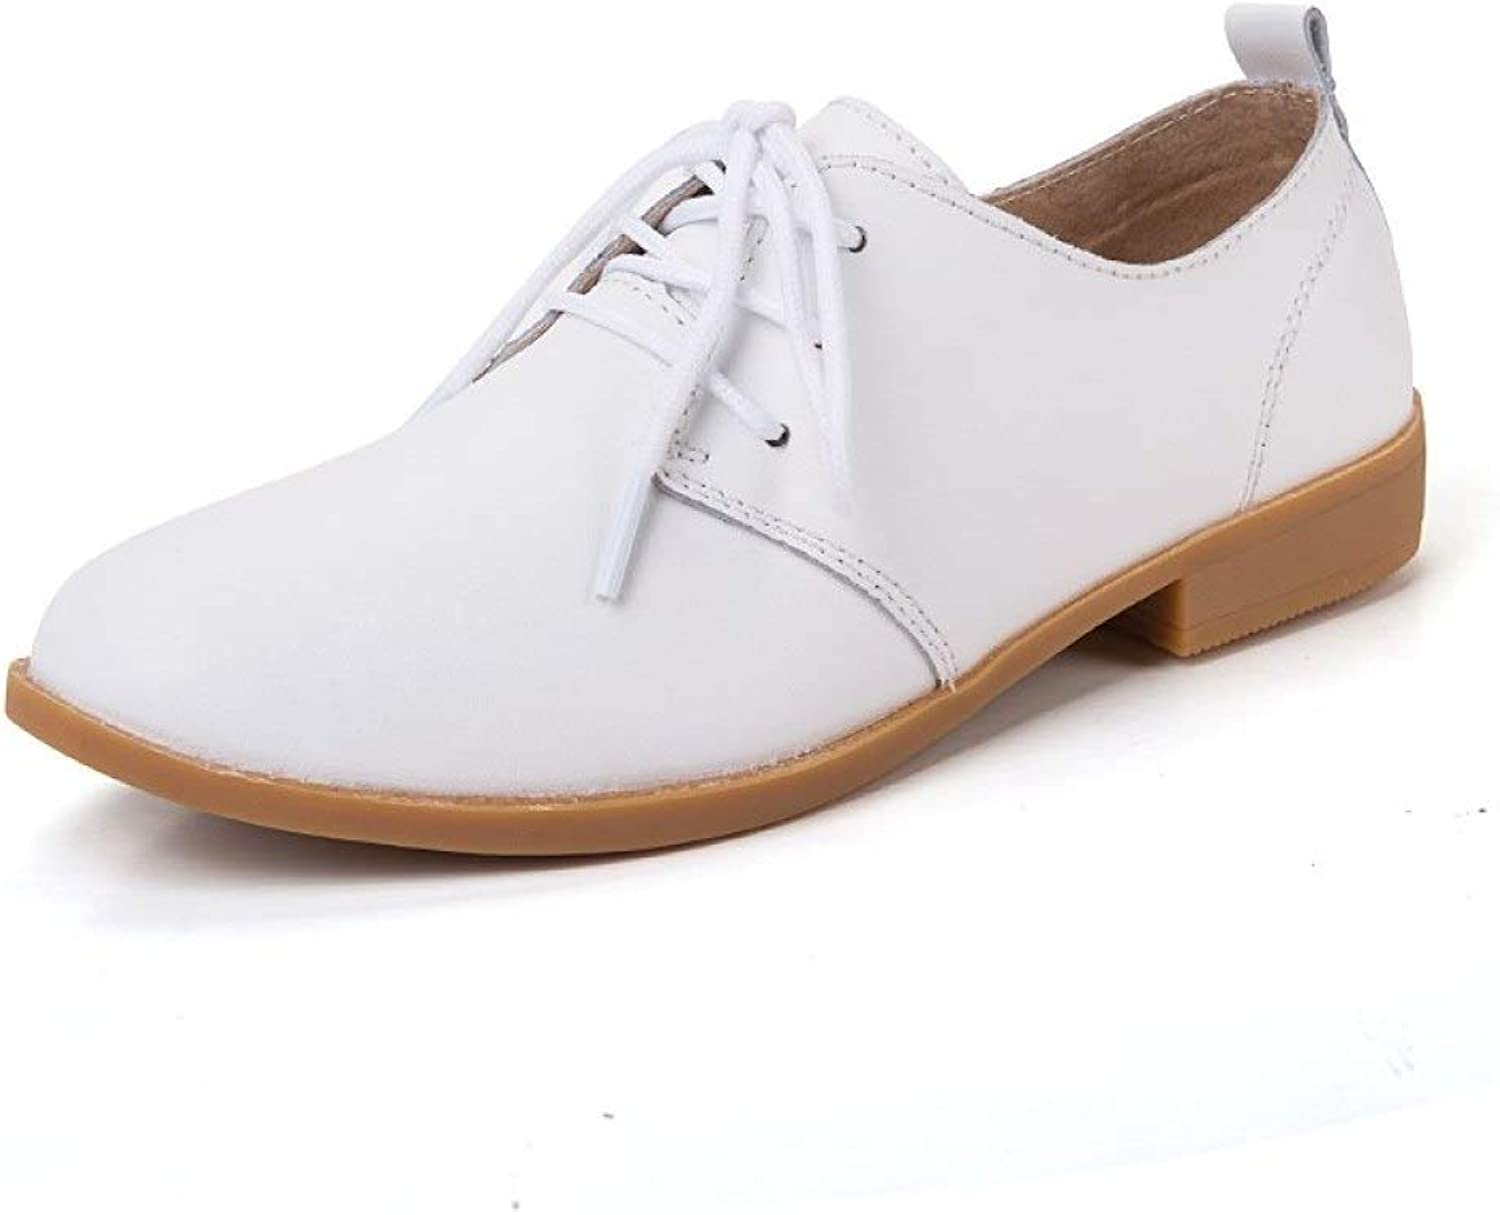 Fay Waters Leather Oxfords for Women Lace Up Round Toe Low Heel Plain Tone Flat shoes